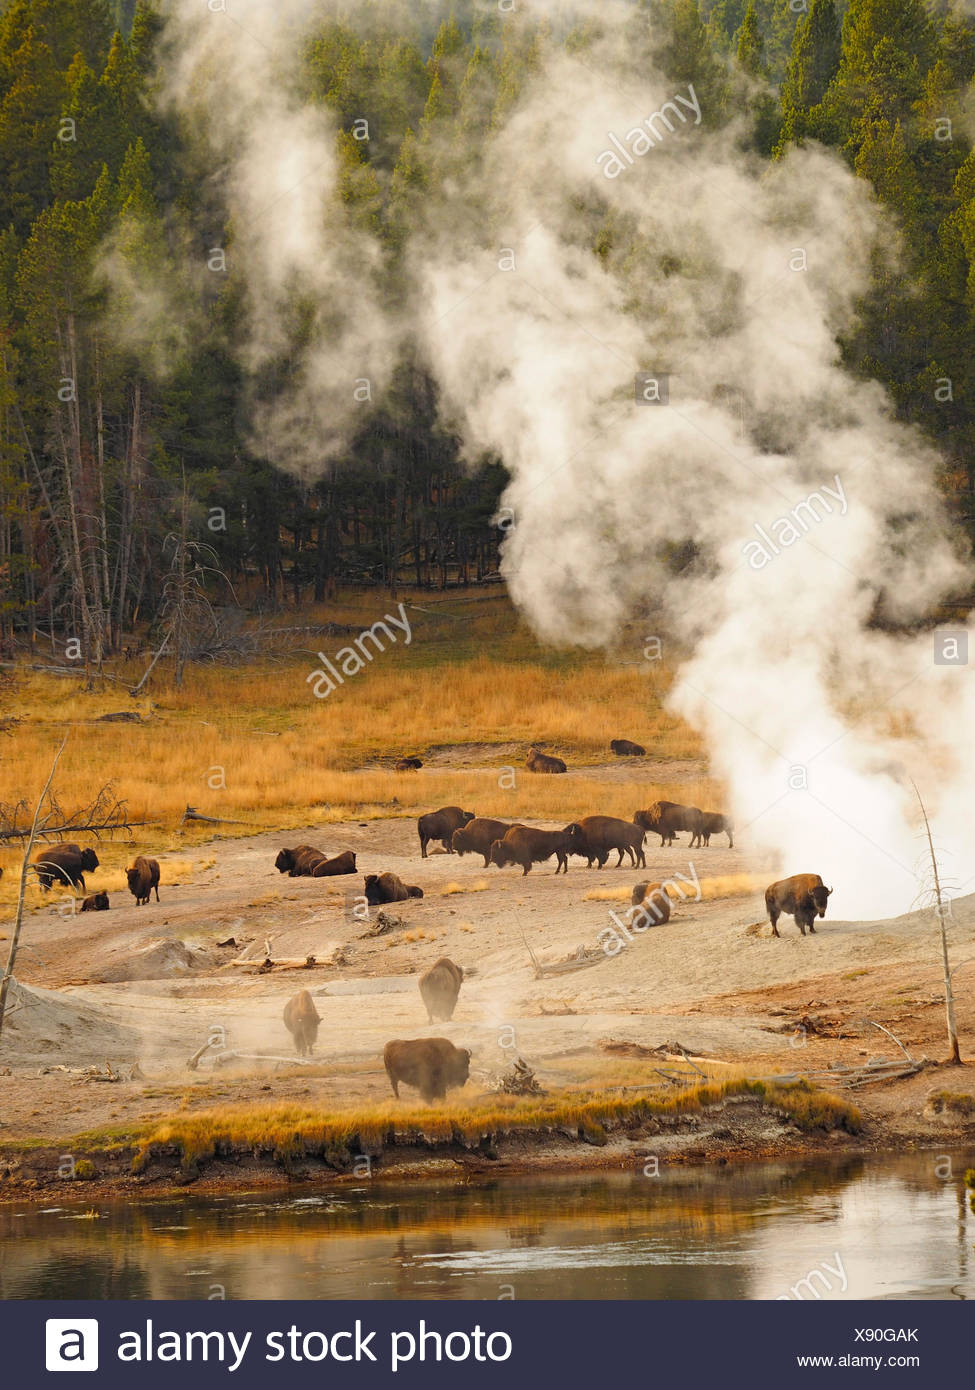 American bison, buffalo (Bison bison), herd of buffalos in front of hot springs, USA, Wyoming, Yellowstone National Park, West Thumb Geysir Basin - Stock Image